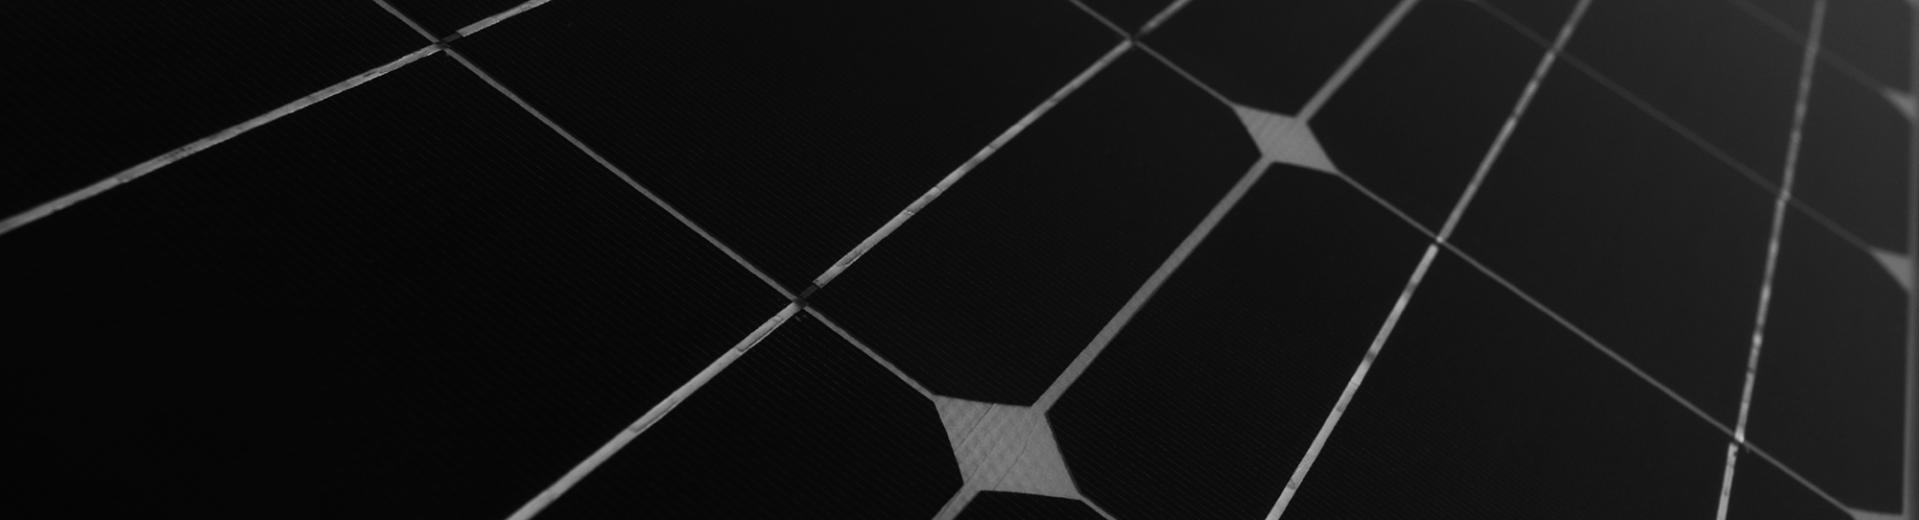 Solar panel black and white texture